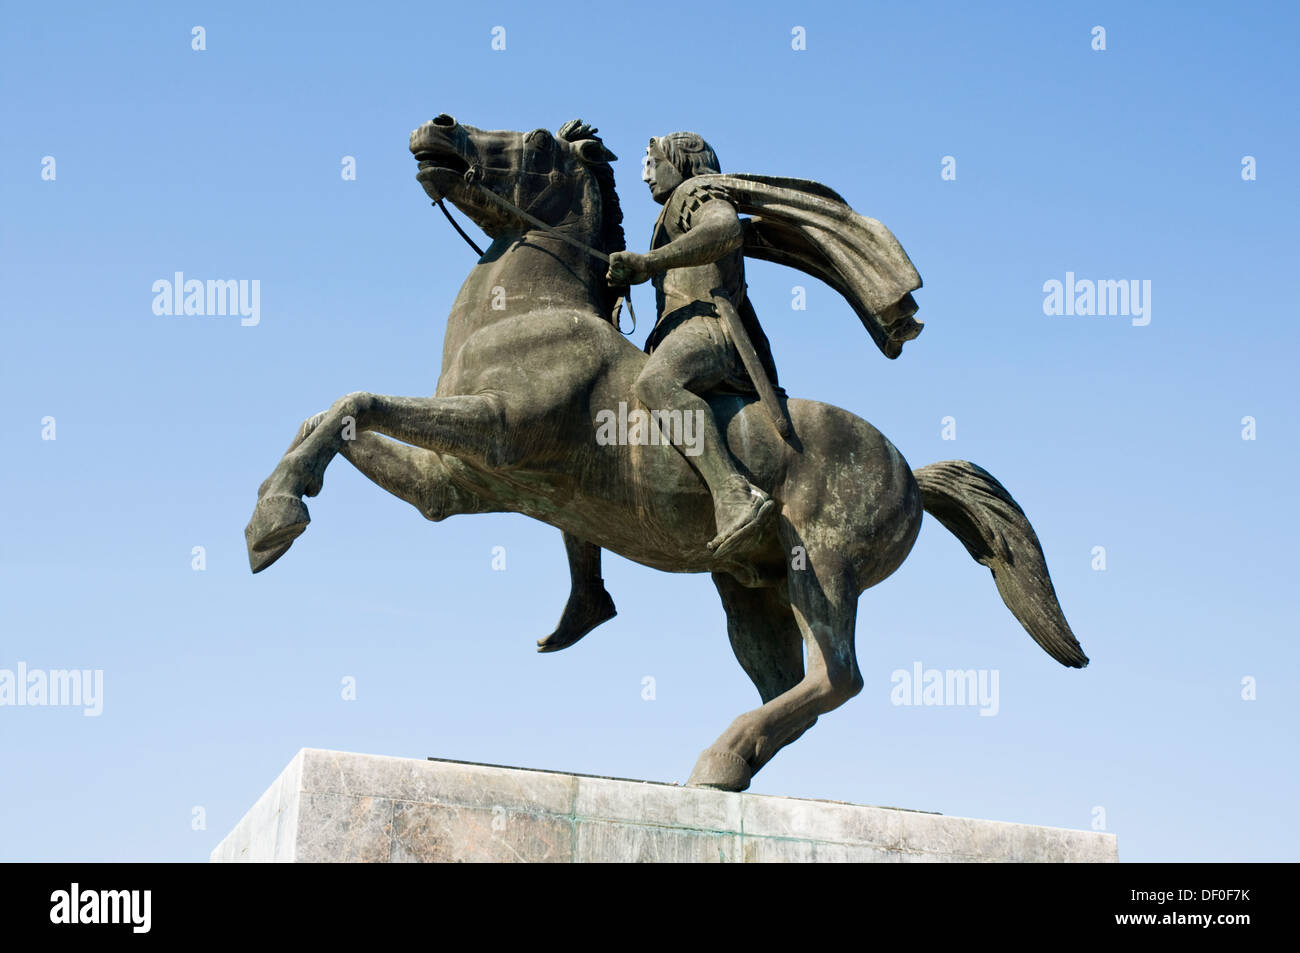 EUROPE, Greece, Thessaloniki, Alexander the Great monument on the waterfront, Alexander on horseback - Stock Image